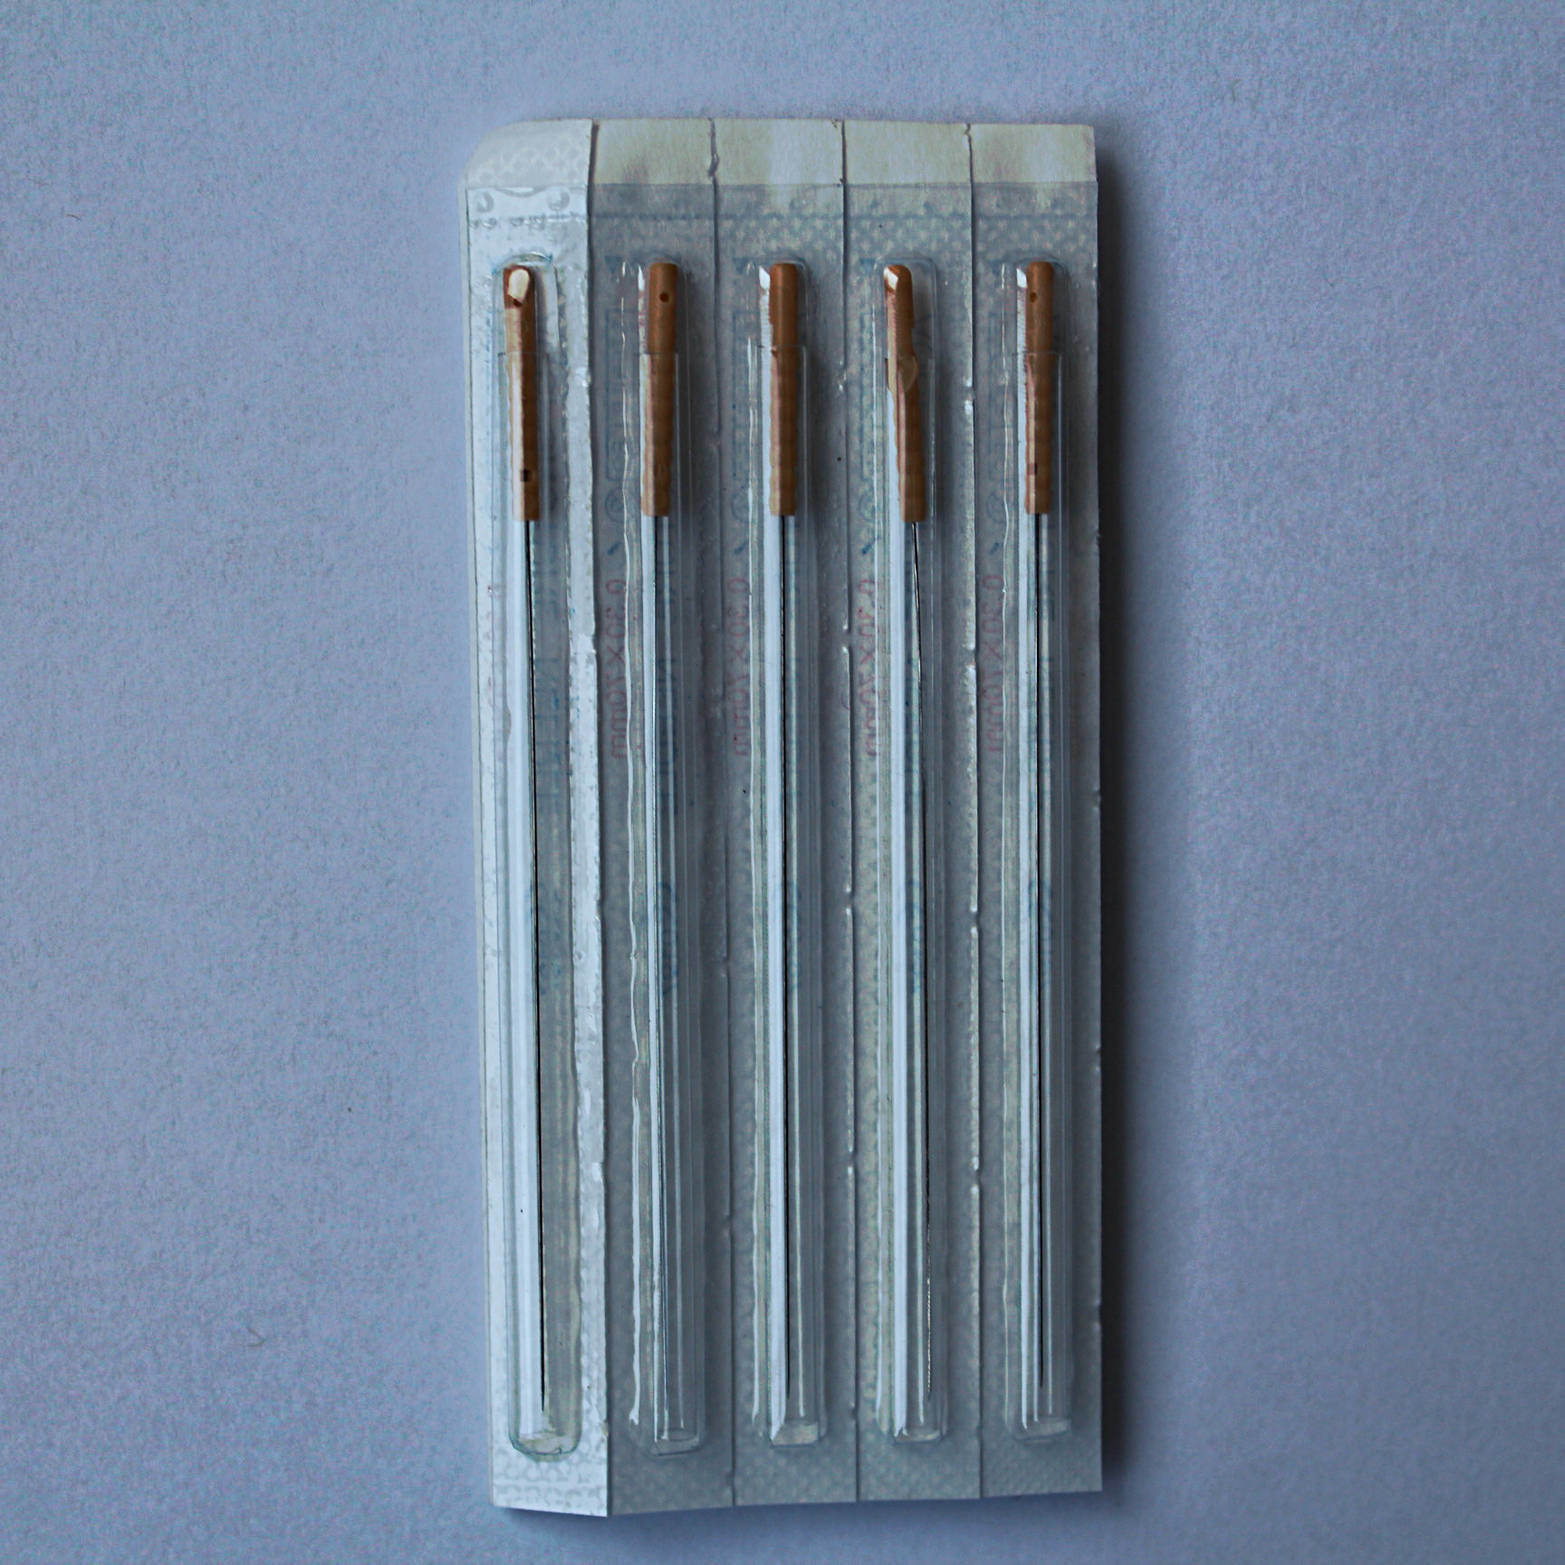 Acupuncture Needles with Plastic Handle